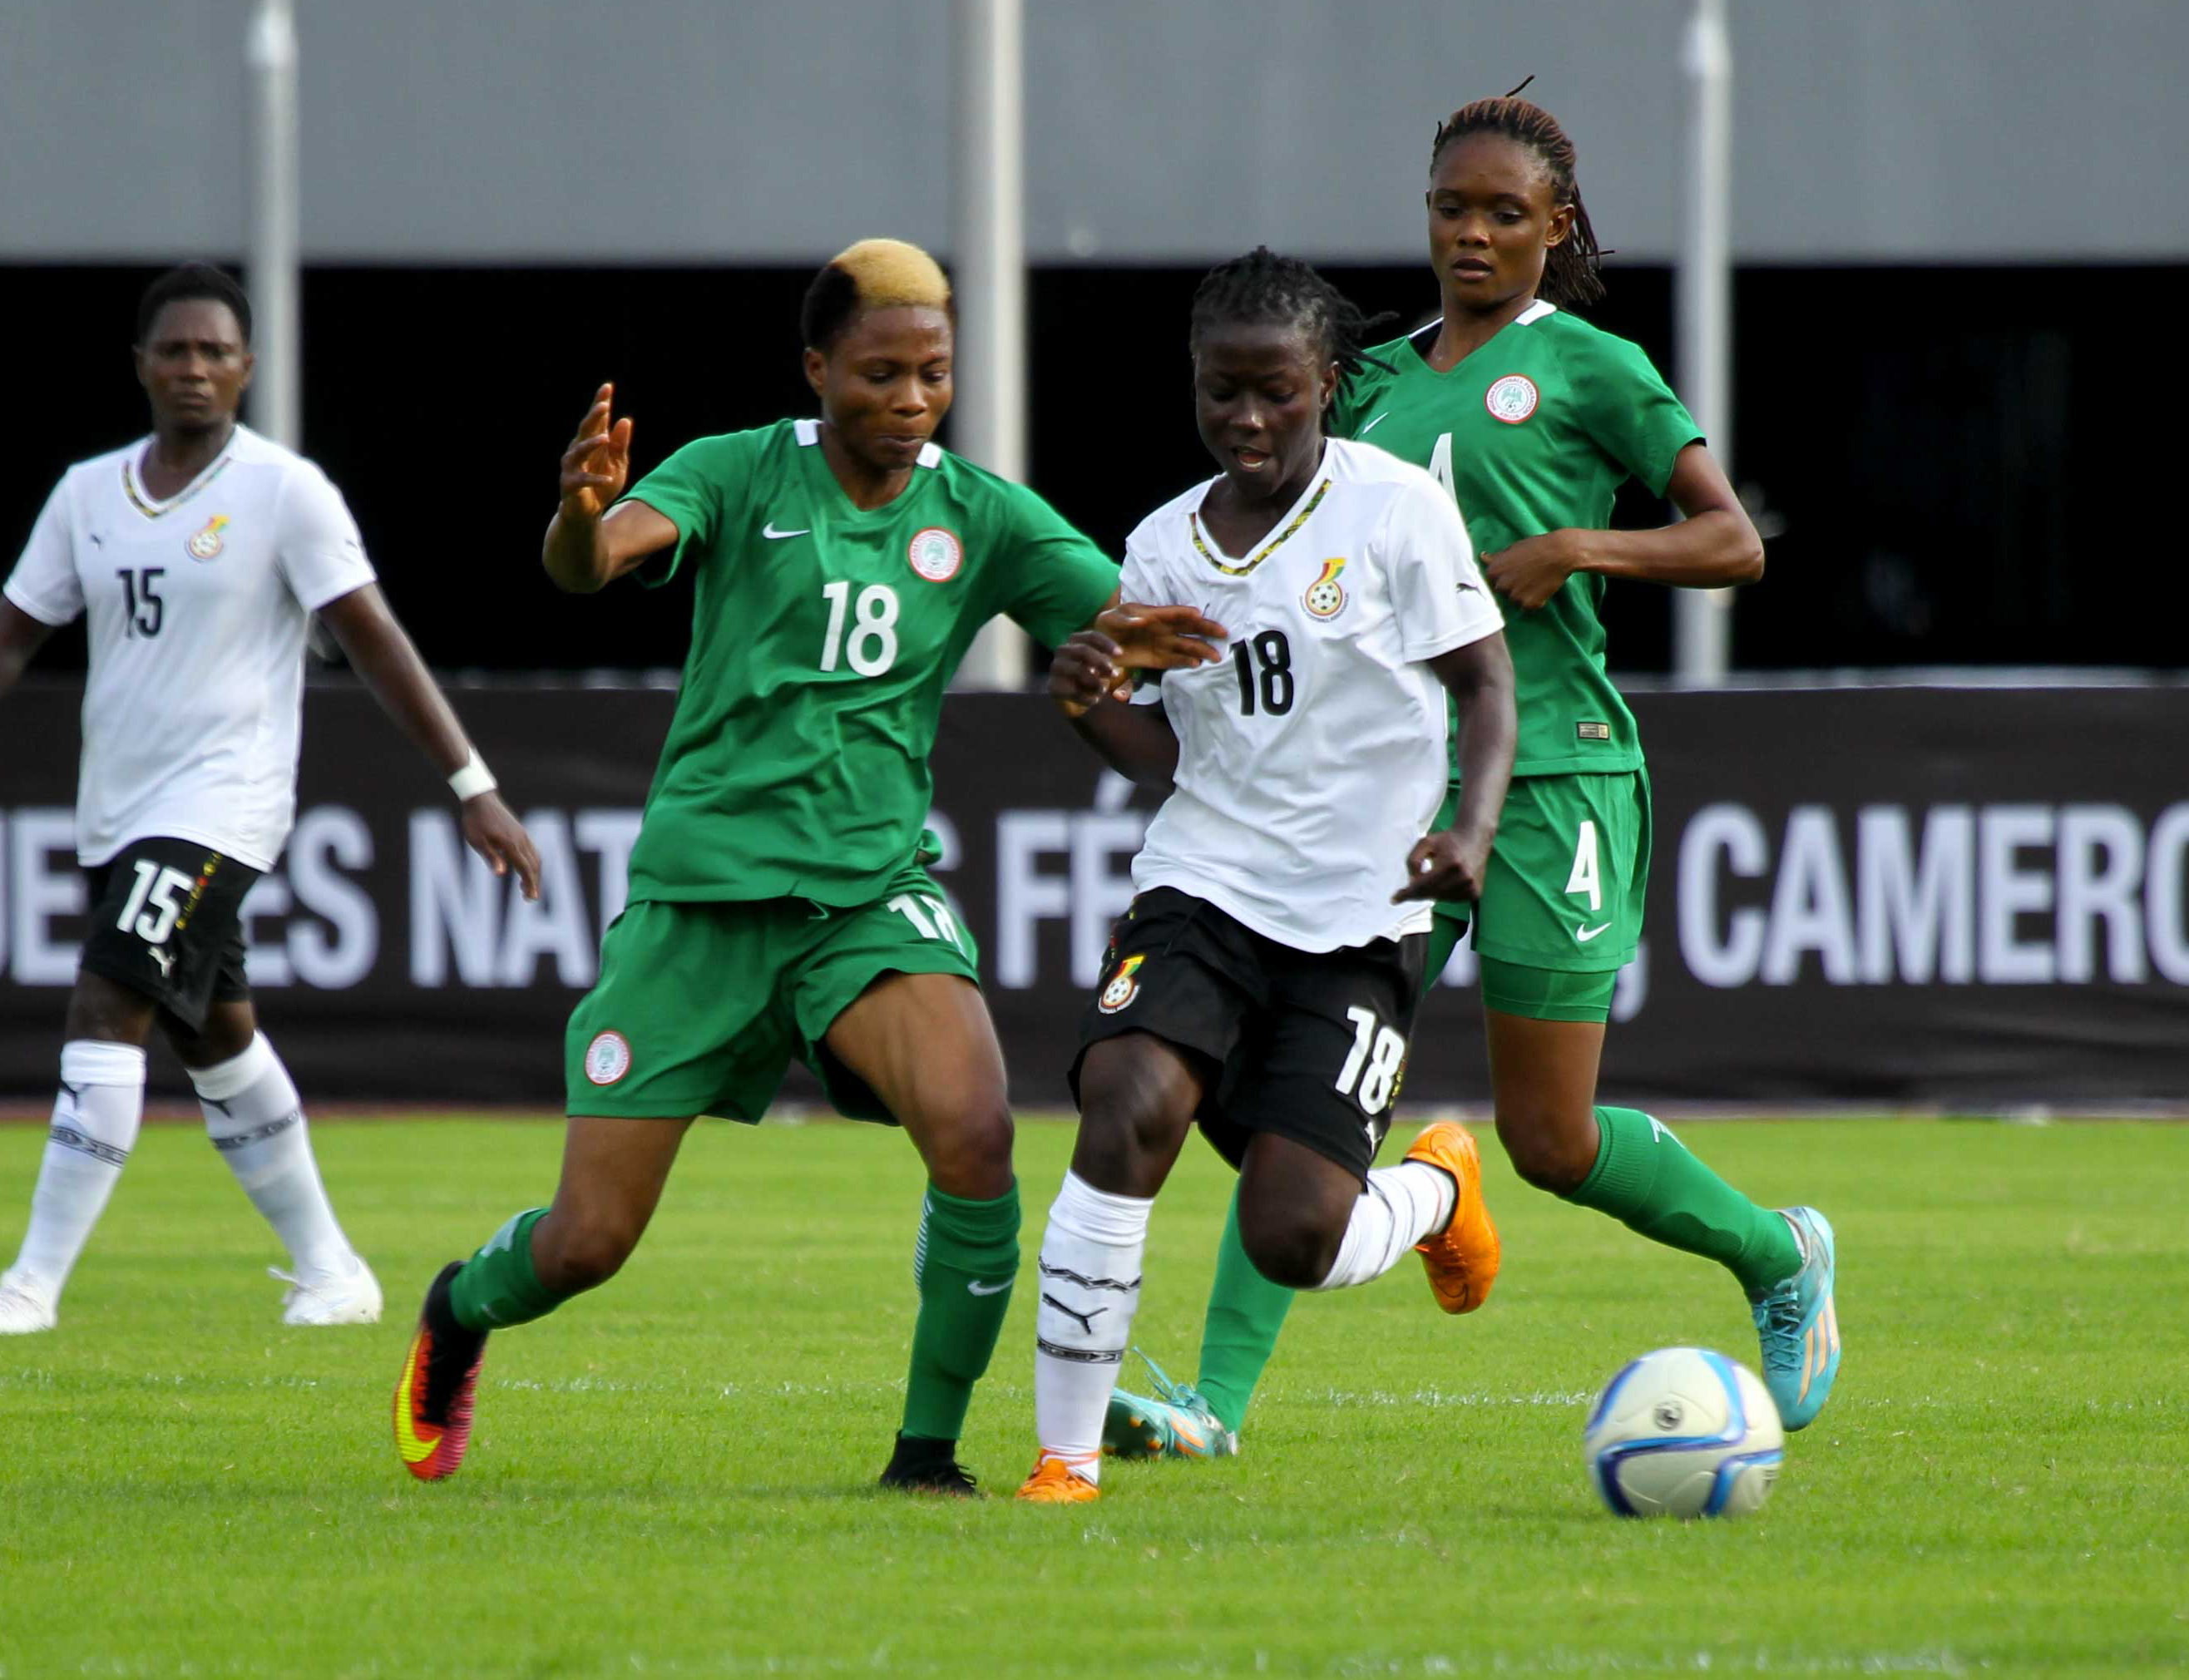 AWCON: Ghana grind out draw with Nigeria